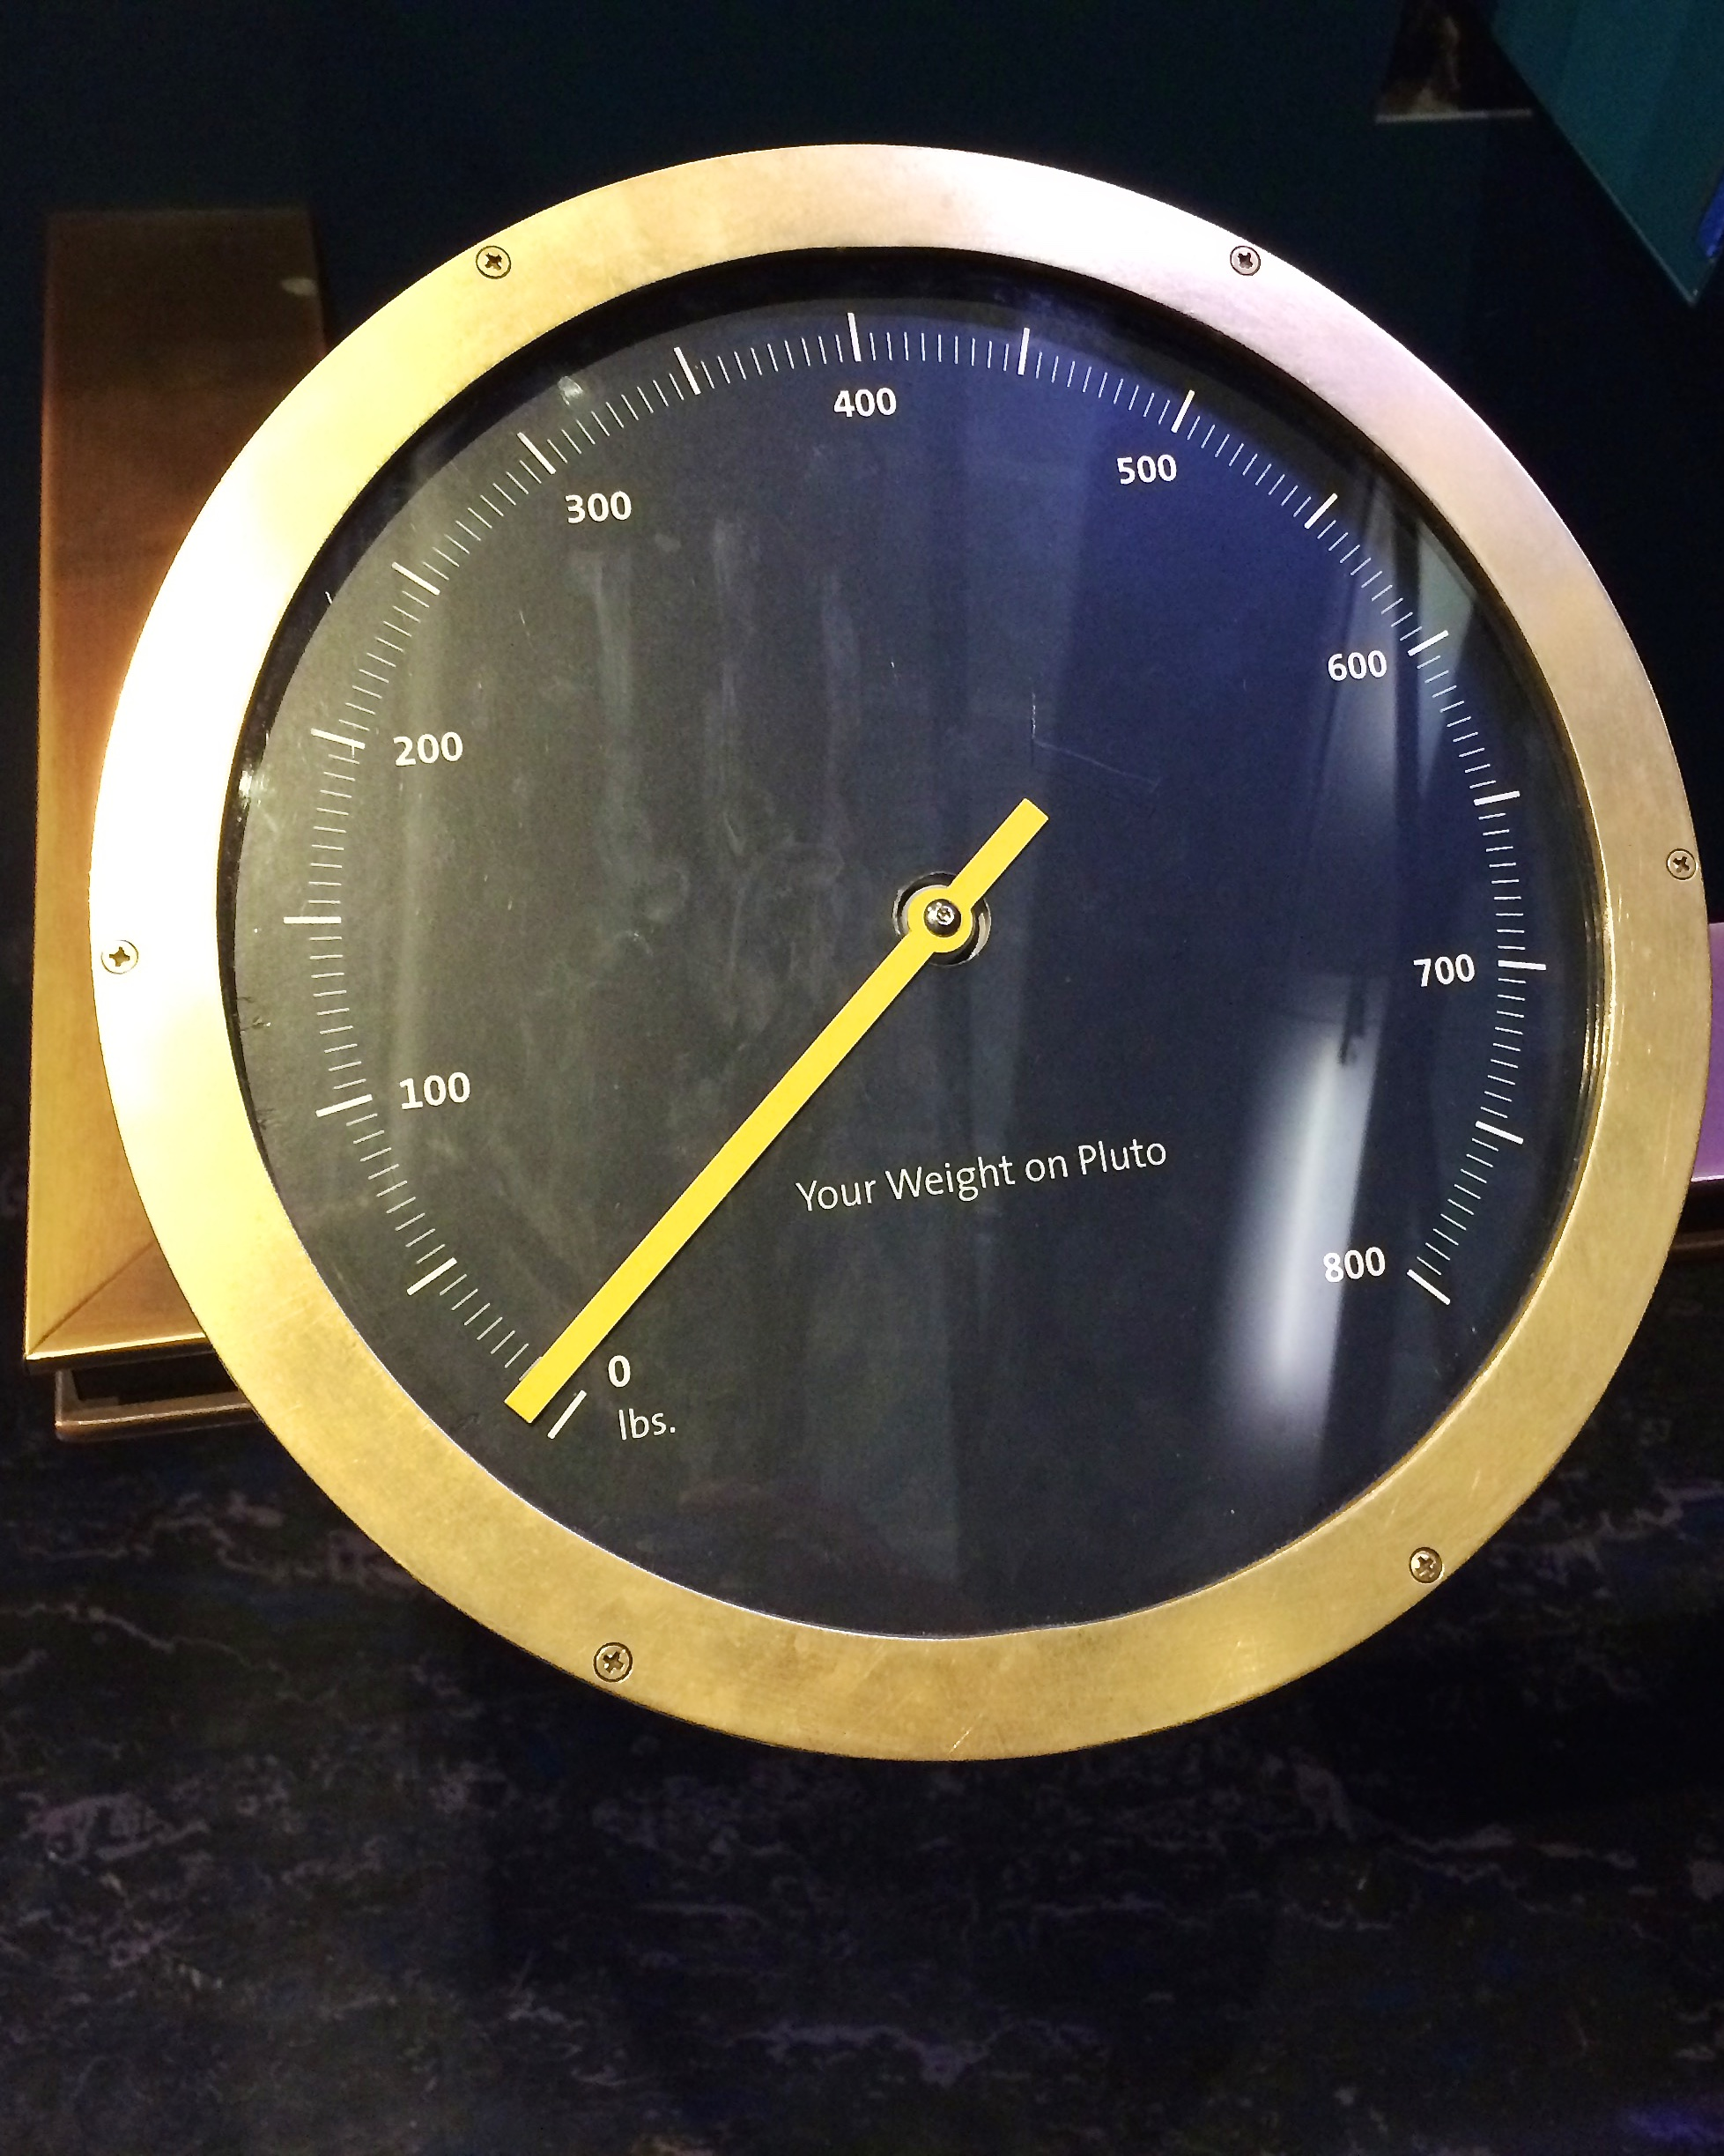 For each of the planets (including Pluto which was still a planet when the exhibit was put into place) there's a scale which shows you how much you'd weigh